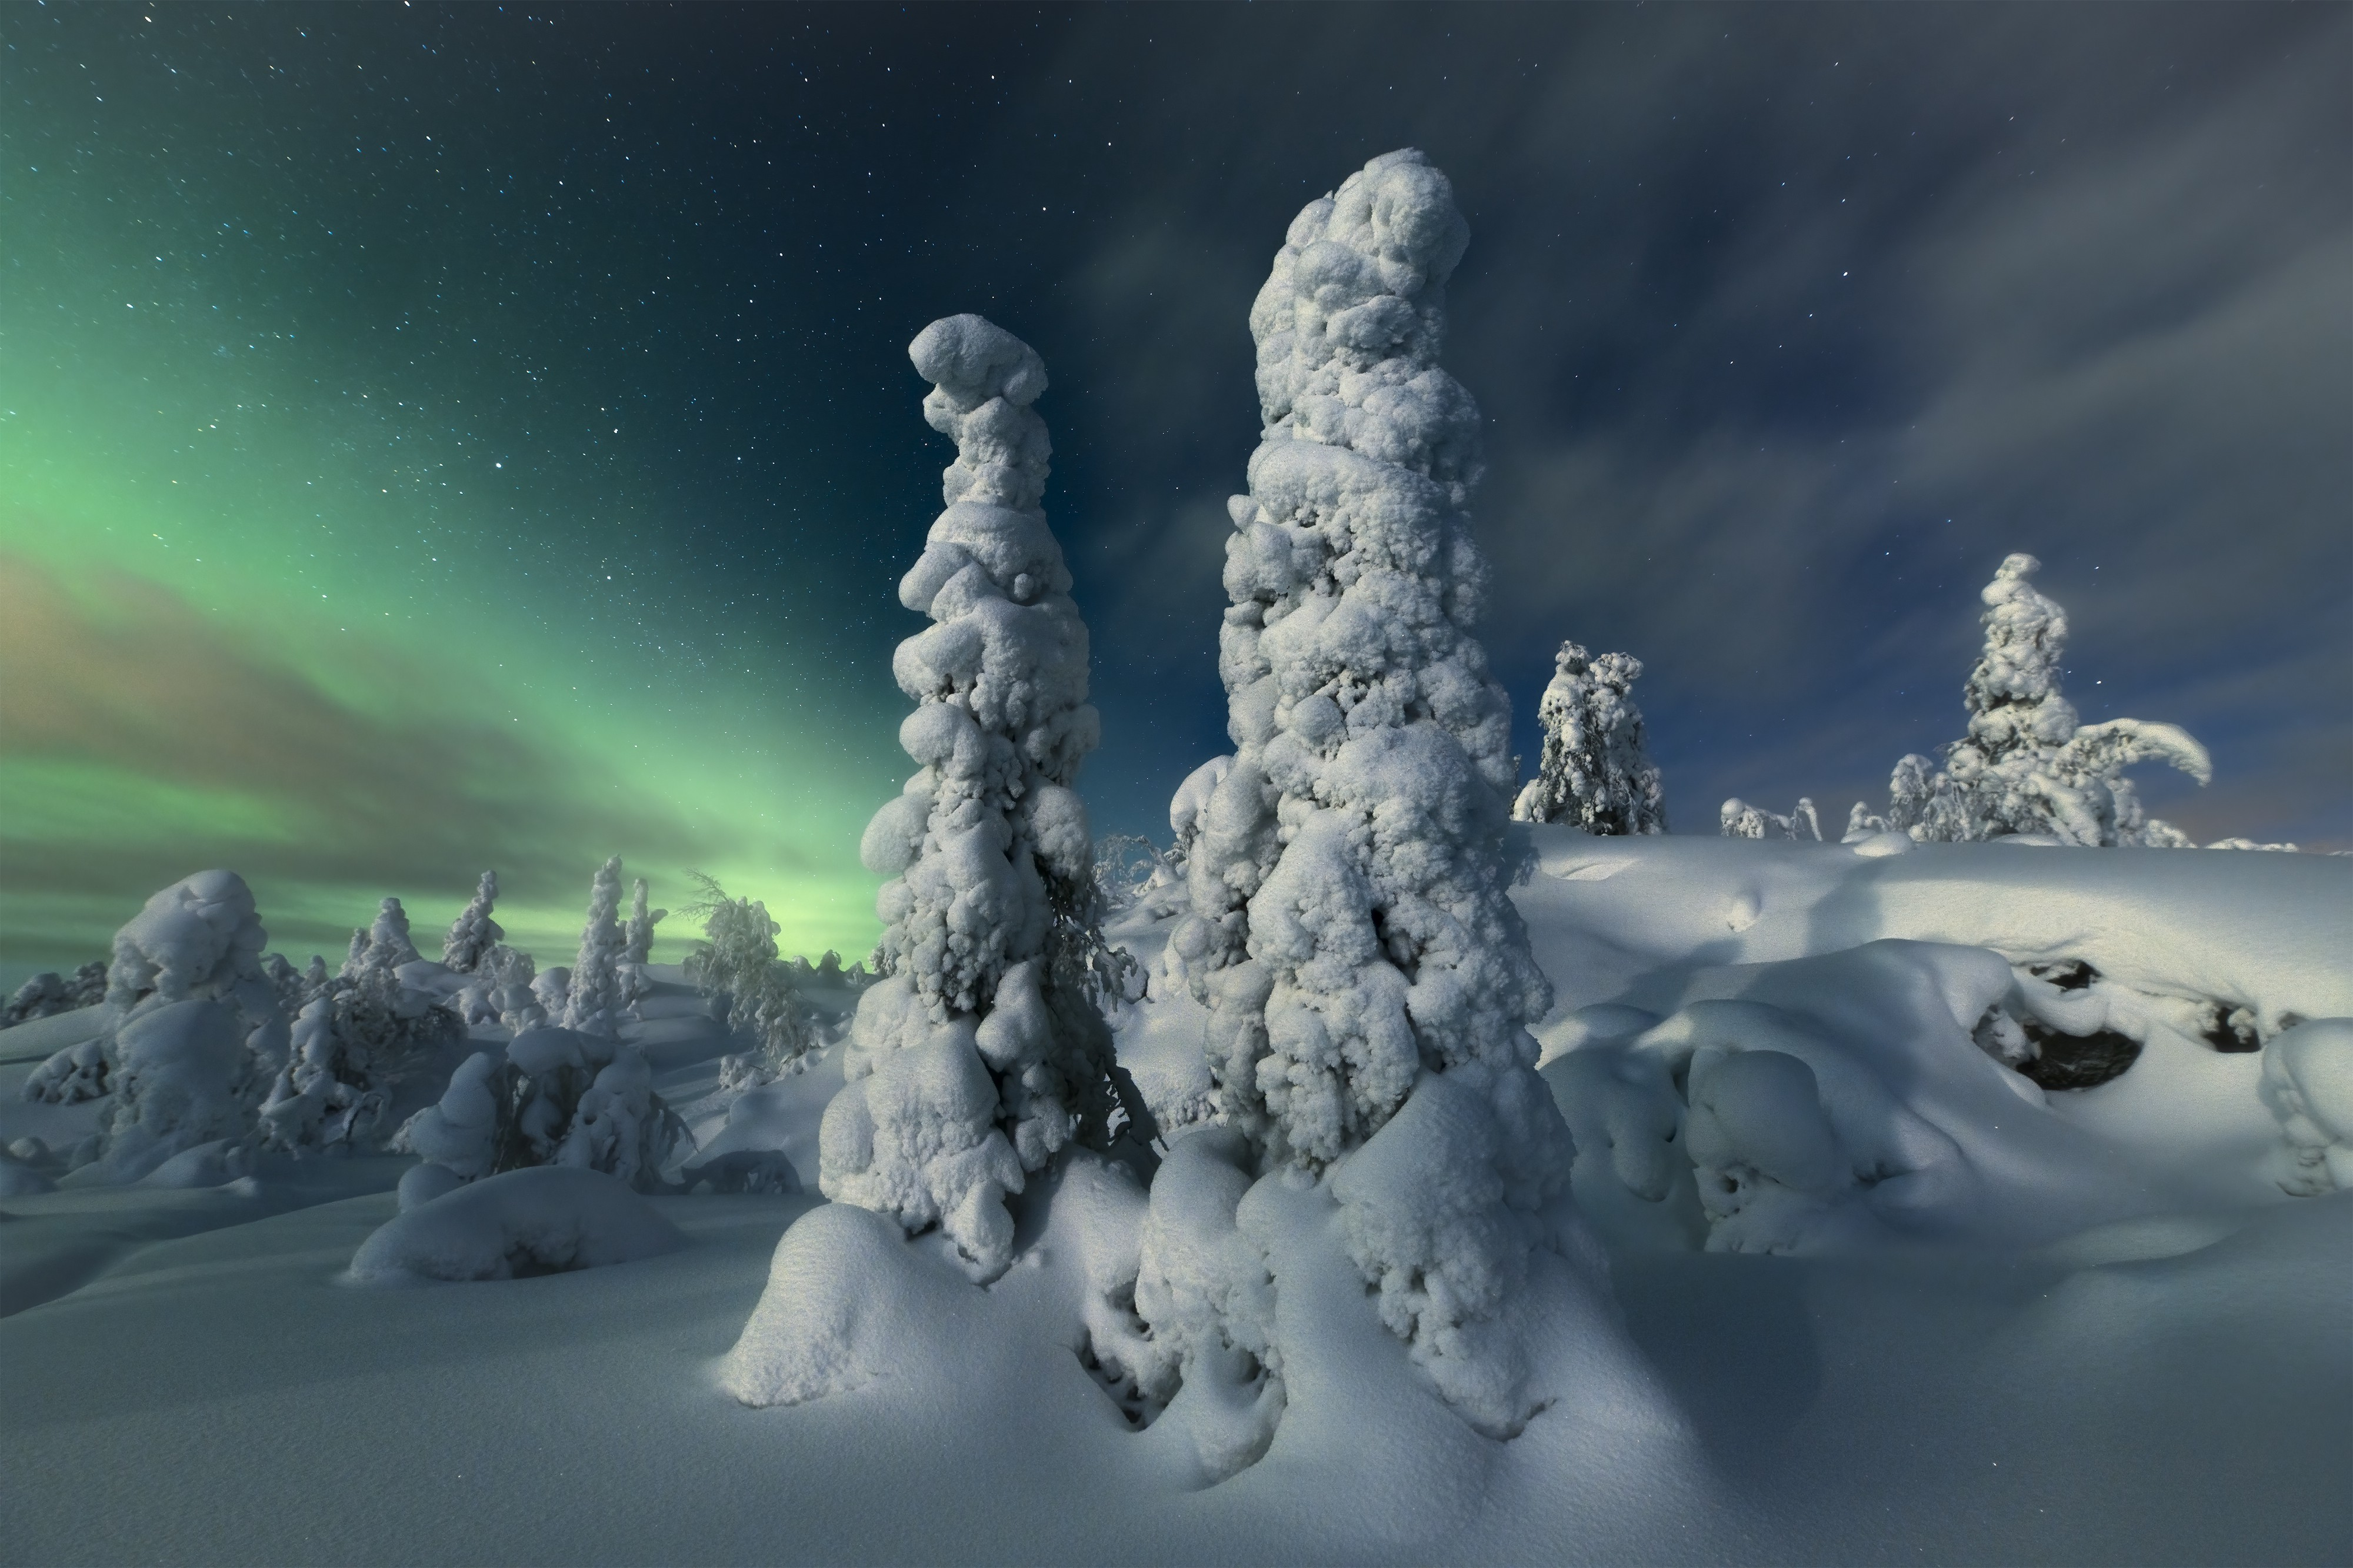 A background of green northern lights and a foreground of trees covered in so much snow they look like abstract statues